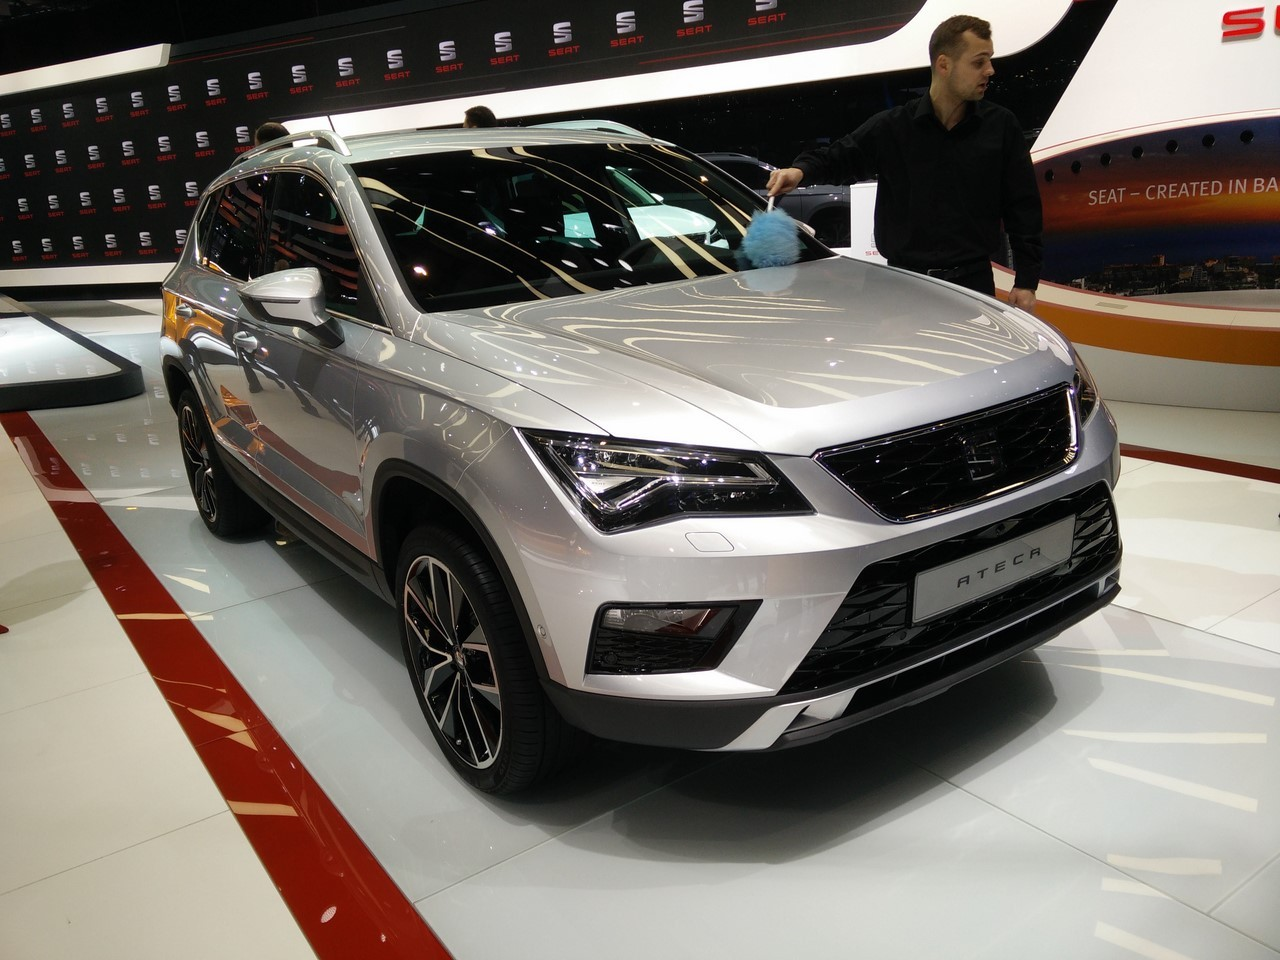 prix seat ateca 2016 le suv de seat est vendu moins de 22 000. Black Bedroom Furniture Sets. Home Design Ideas